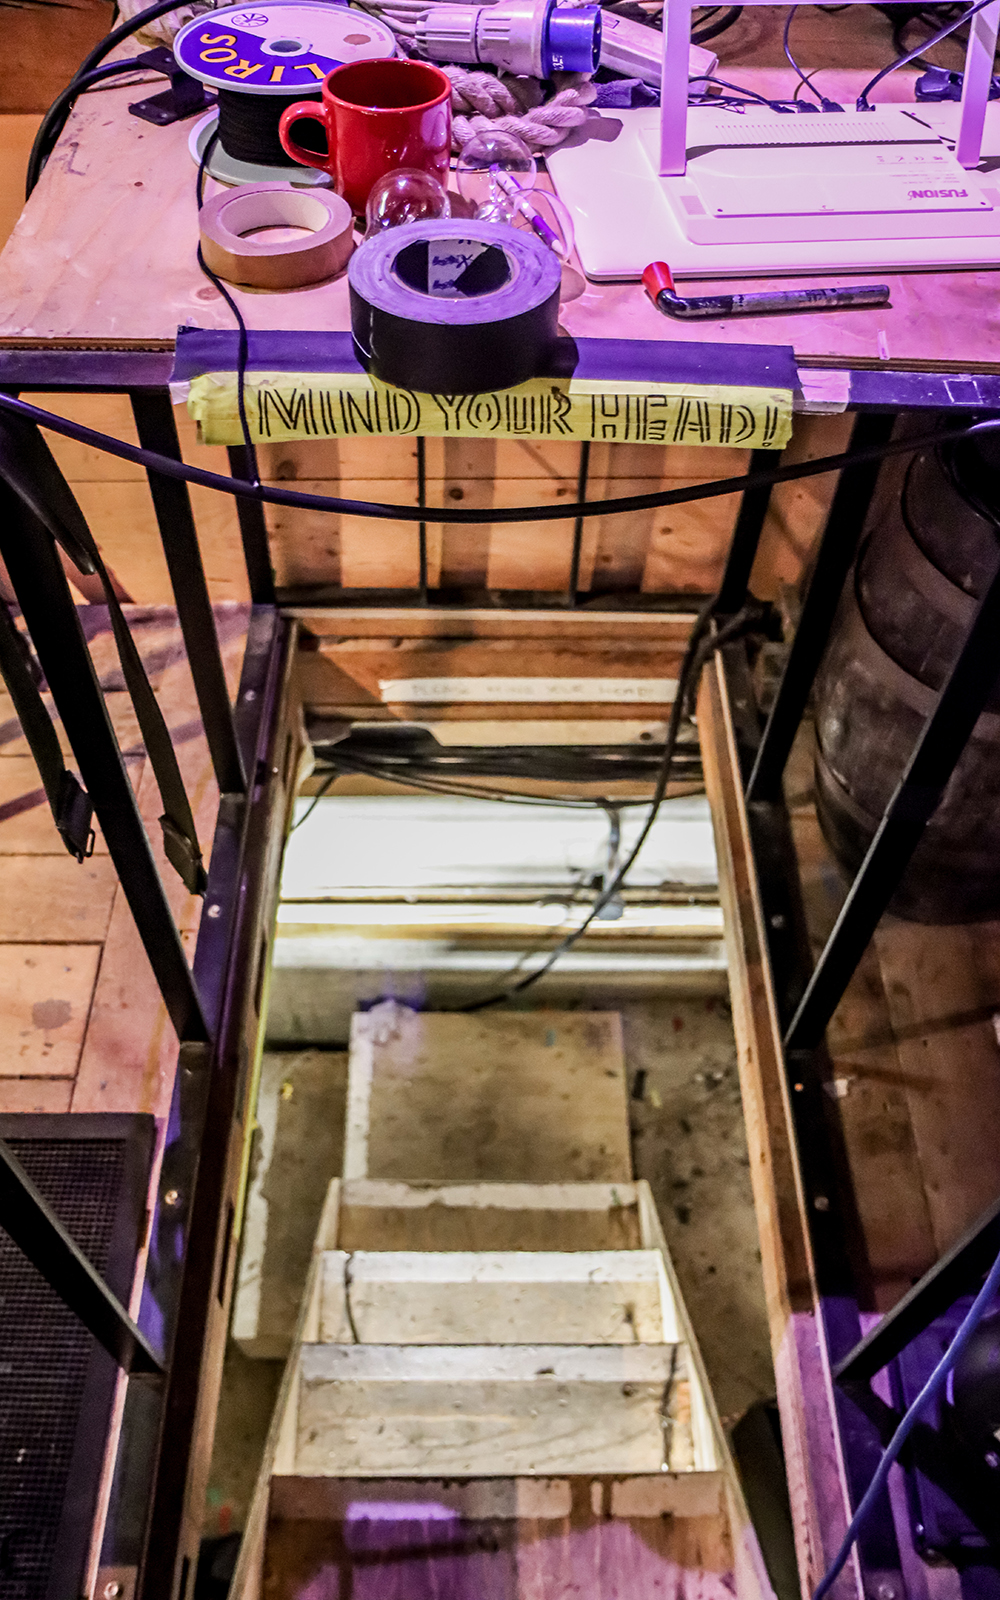 A narrow, steep staircase leads down to a basement, with a 'mind your head' sign above it